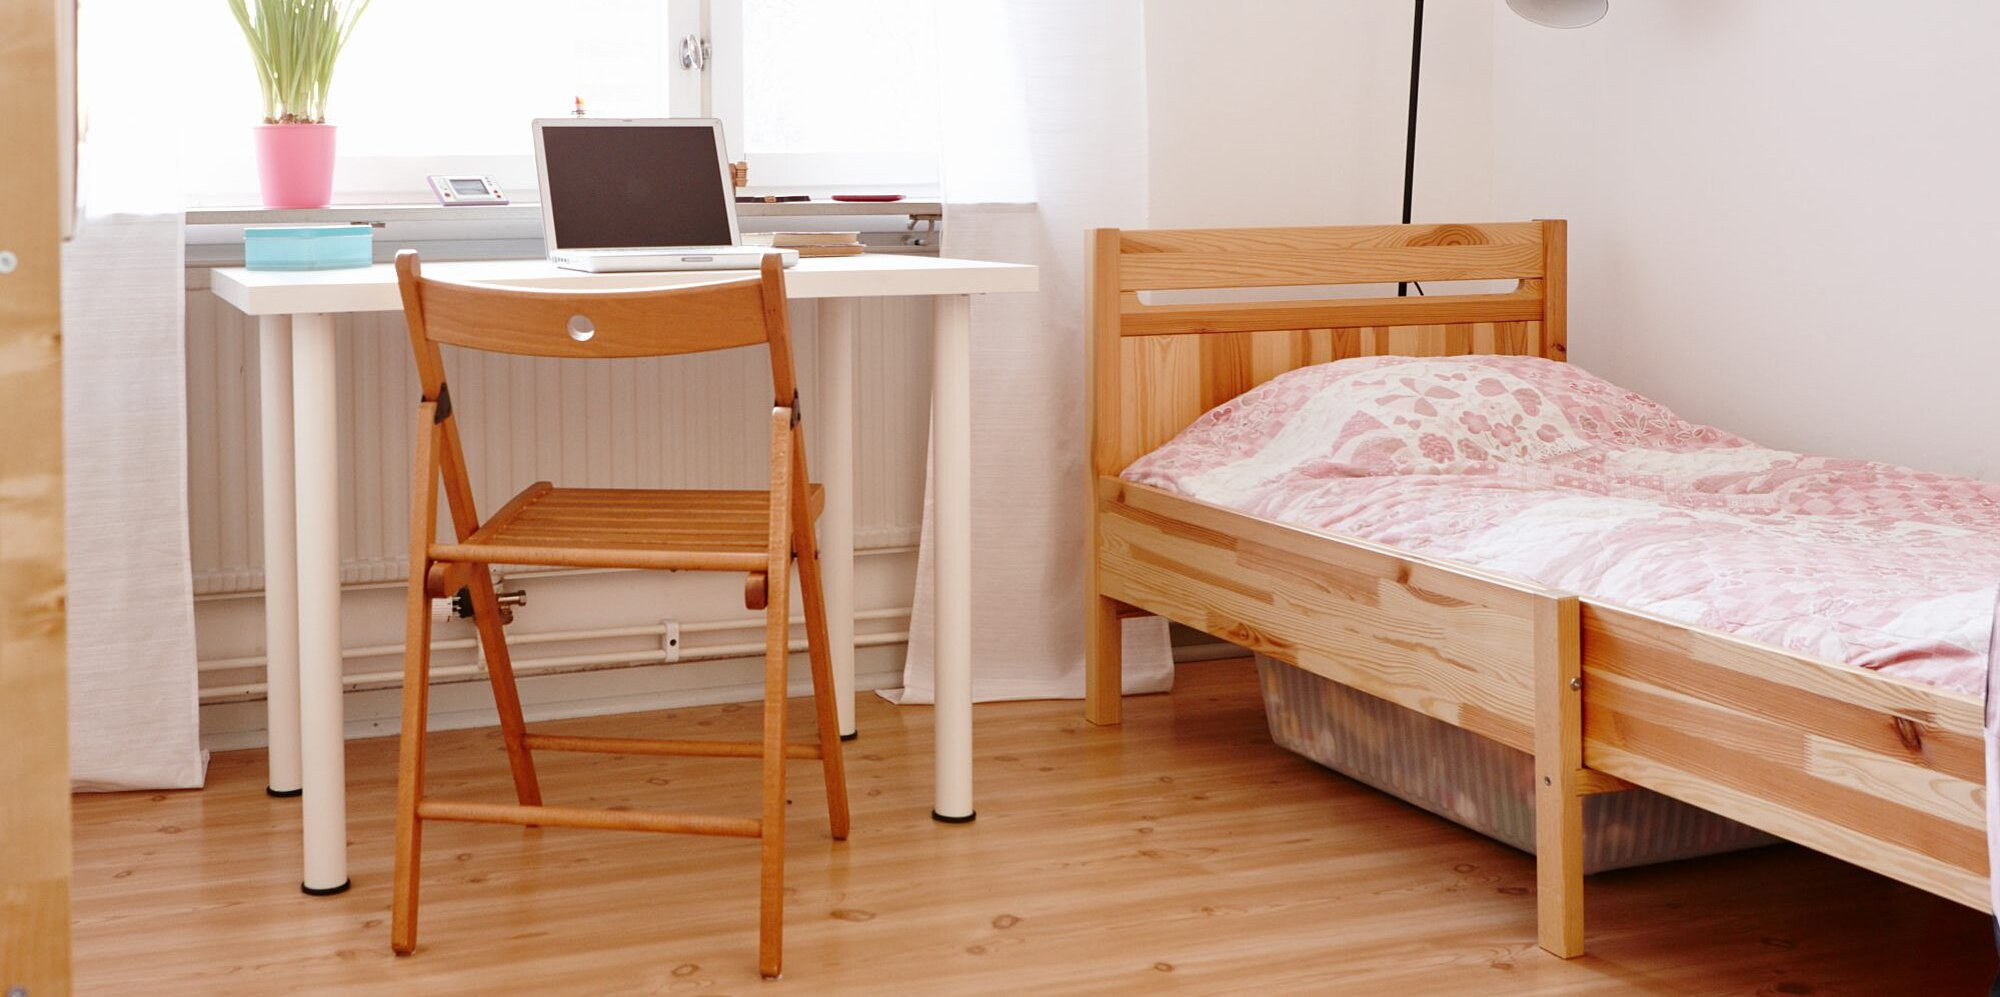 12 Ways To Maximize A Tiny Dorm Room Without Blowing Your Budget